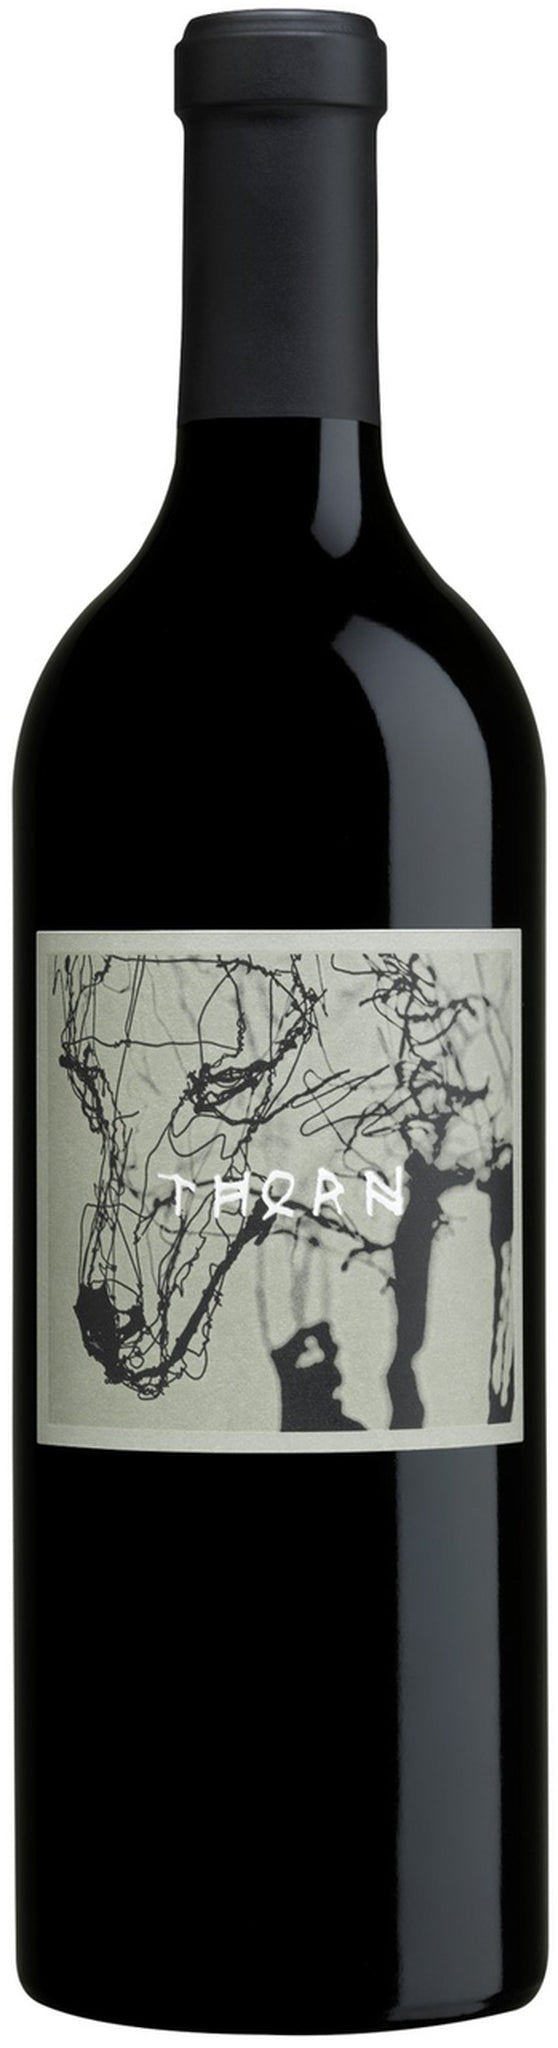 The Prisoner Thorn Napa Valley Merlot 2016